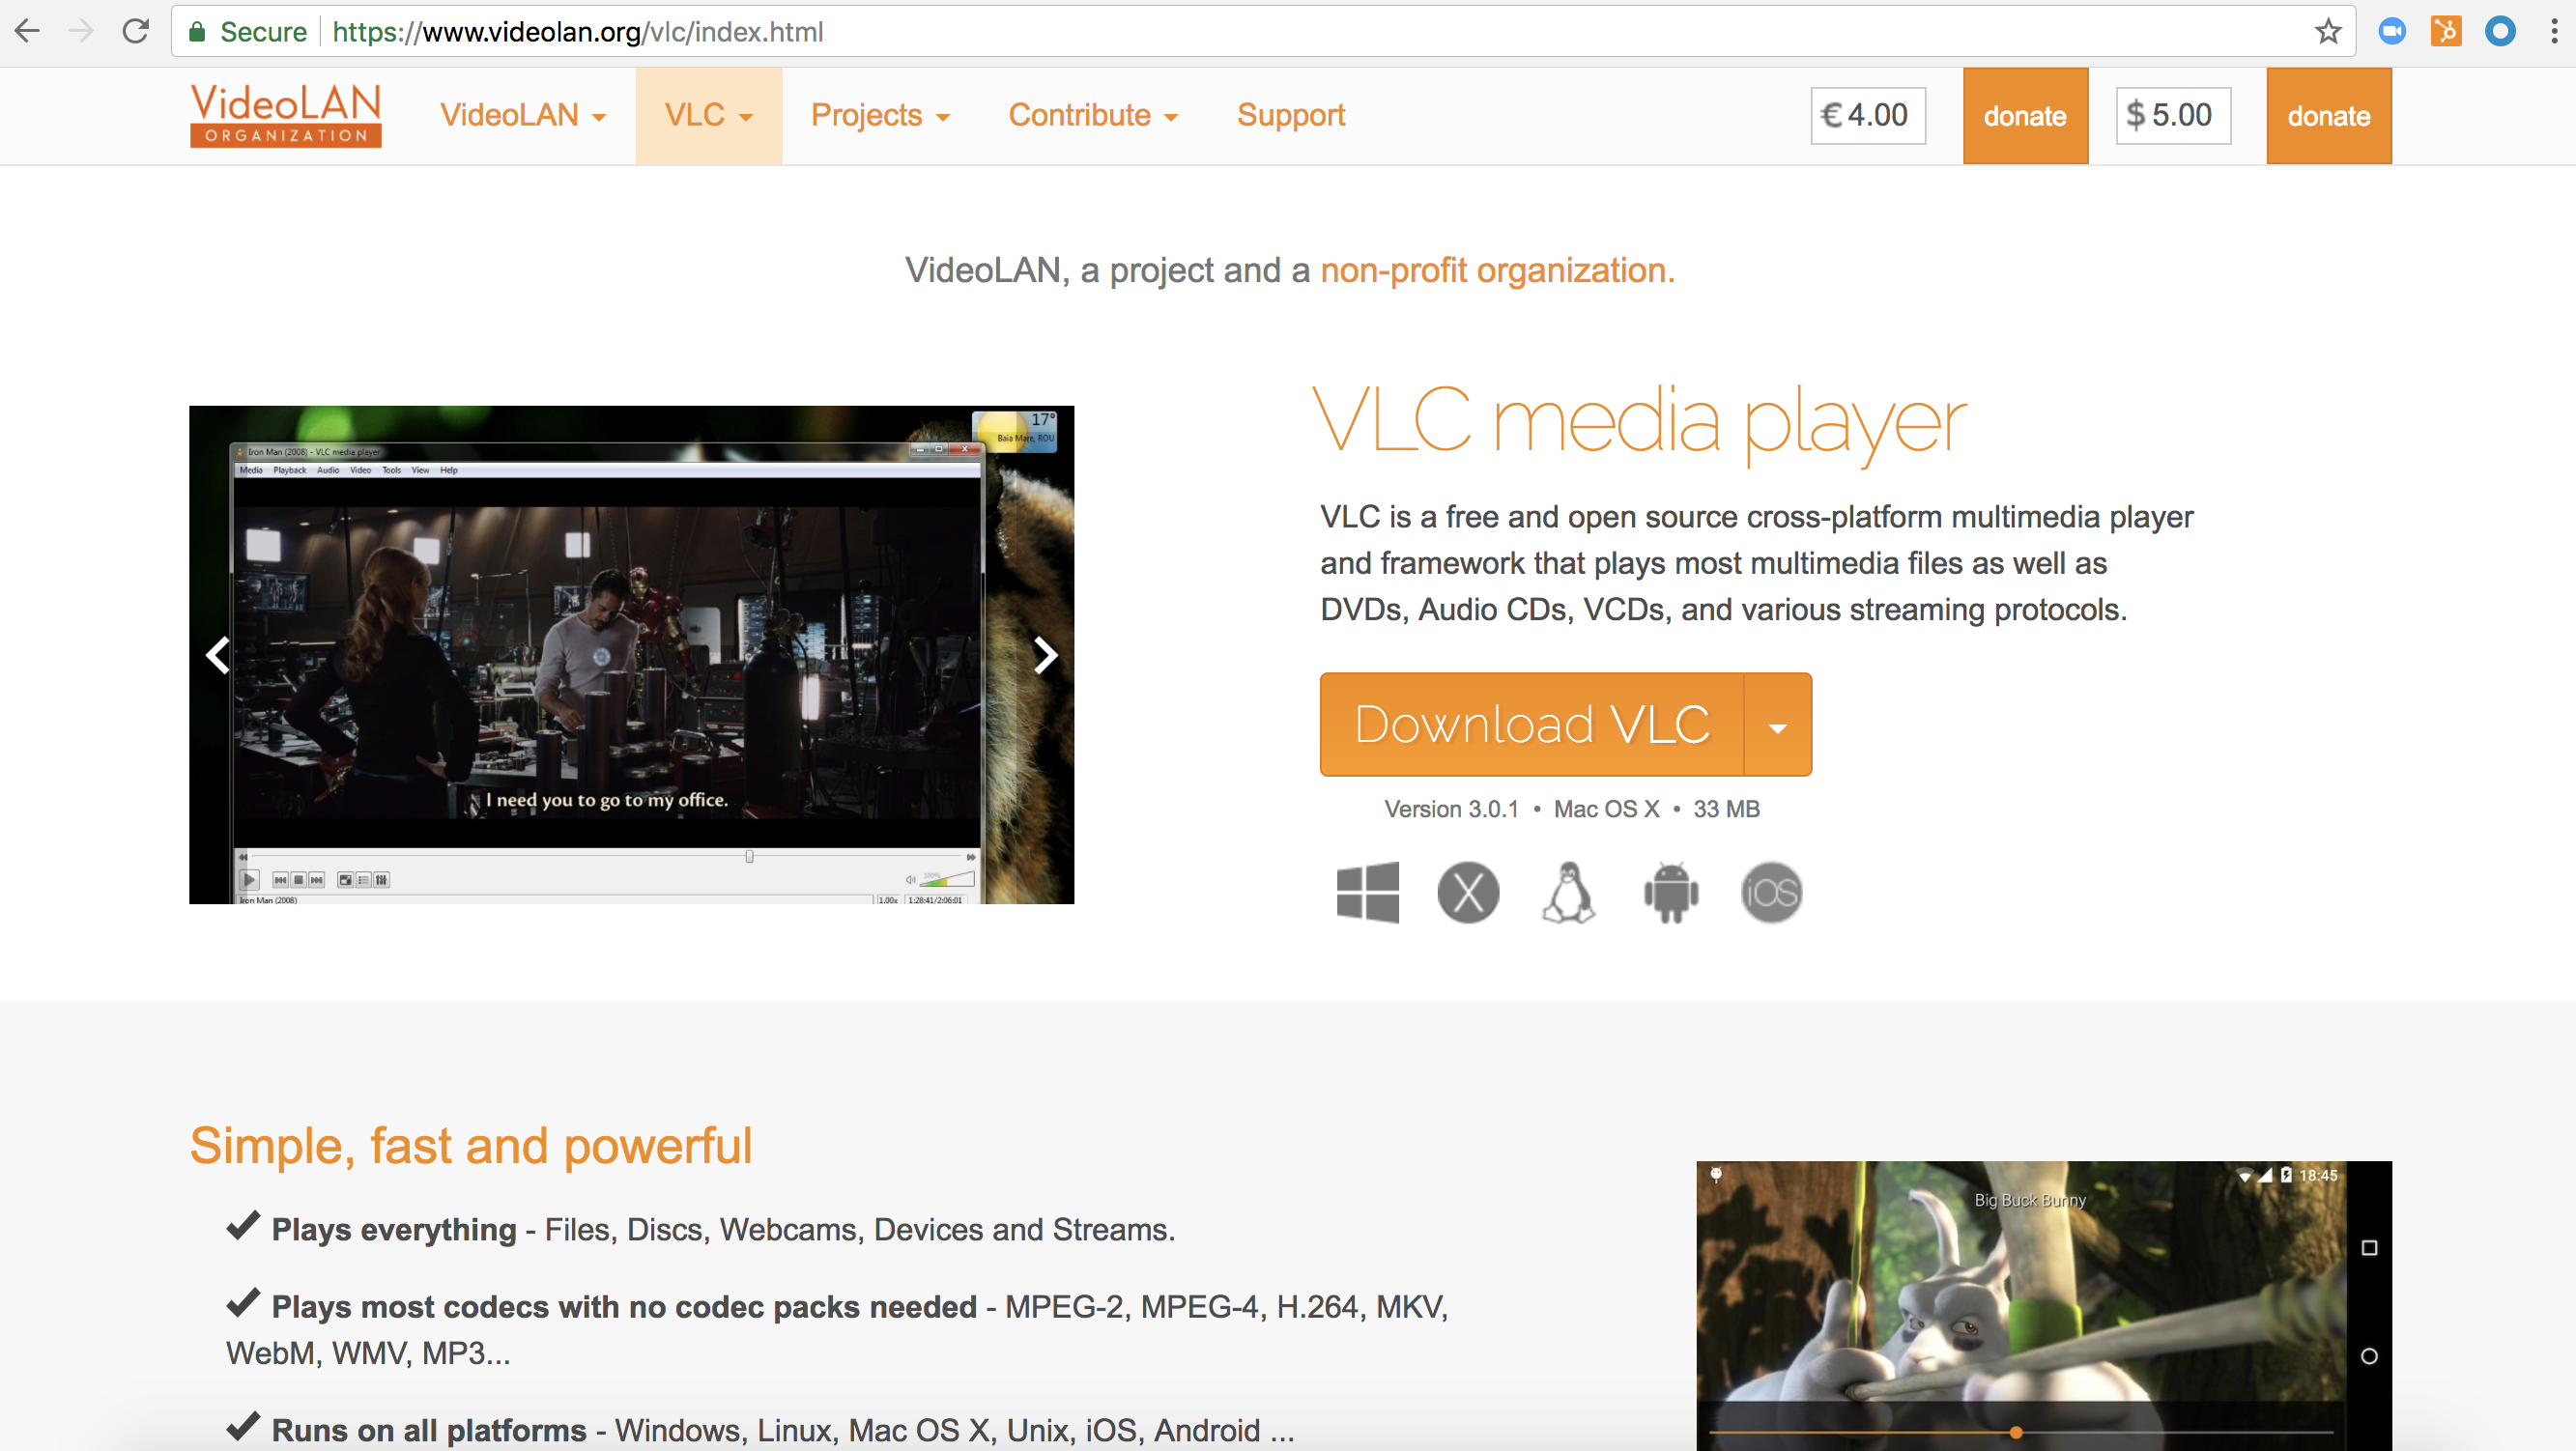 VLC media player homepage